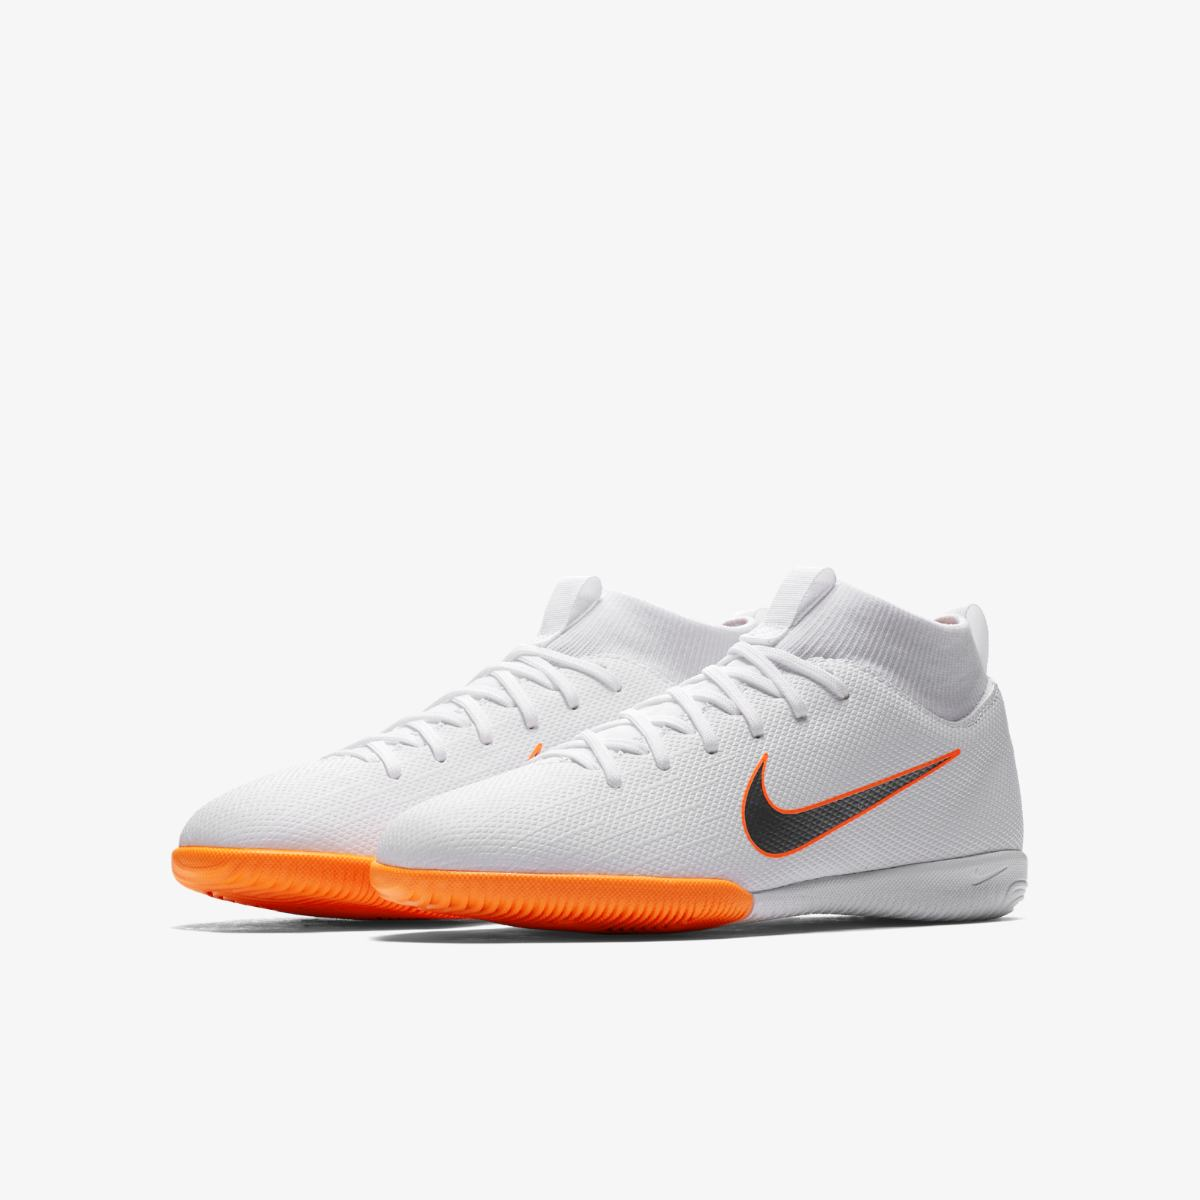 NIKE SUPERFLYX VI ACADEMY GS IC AH7343-107 JR